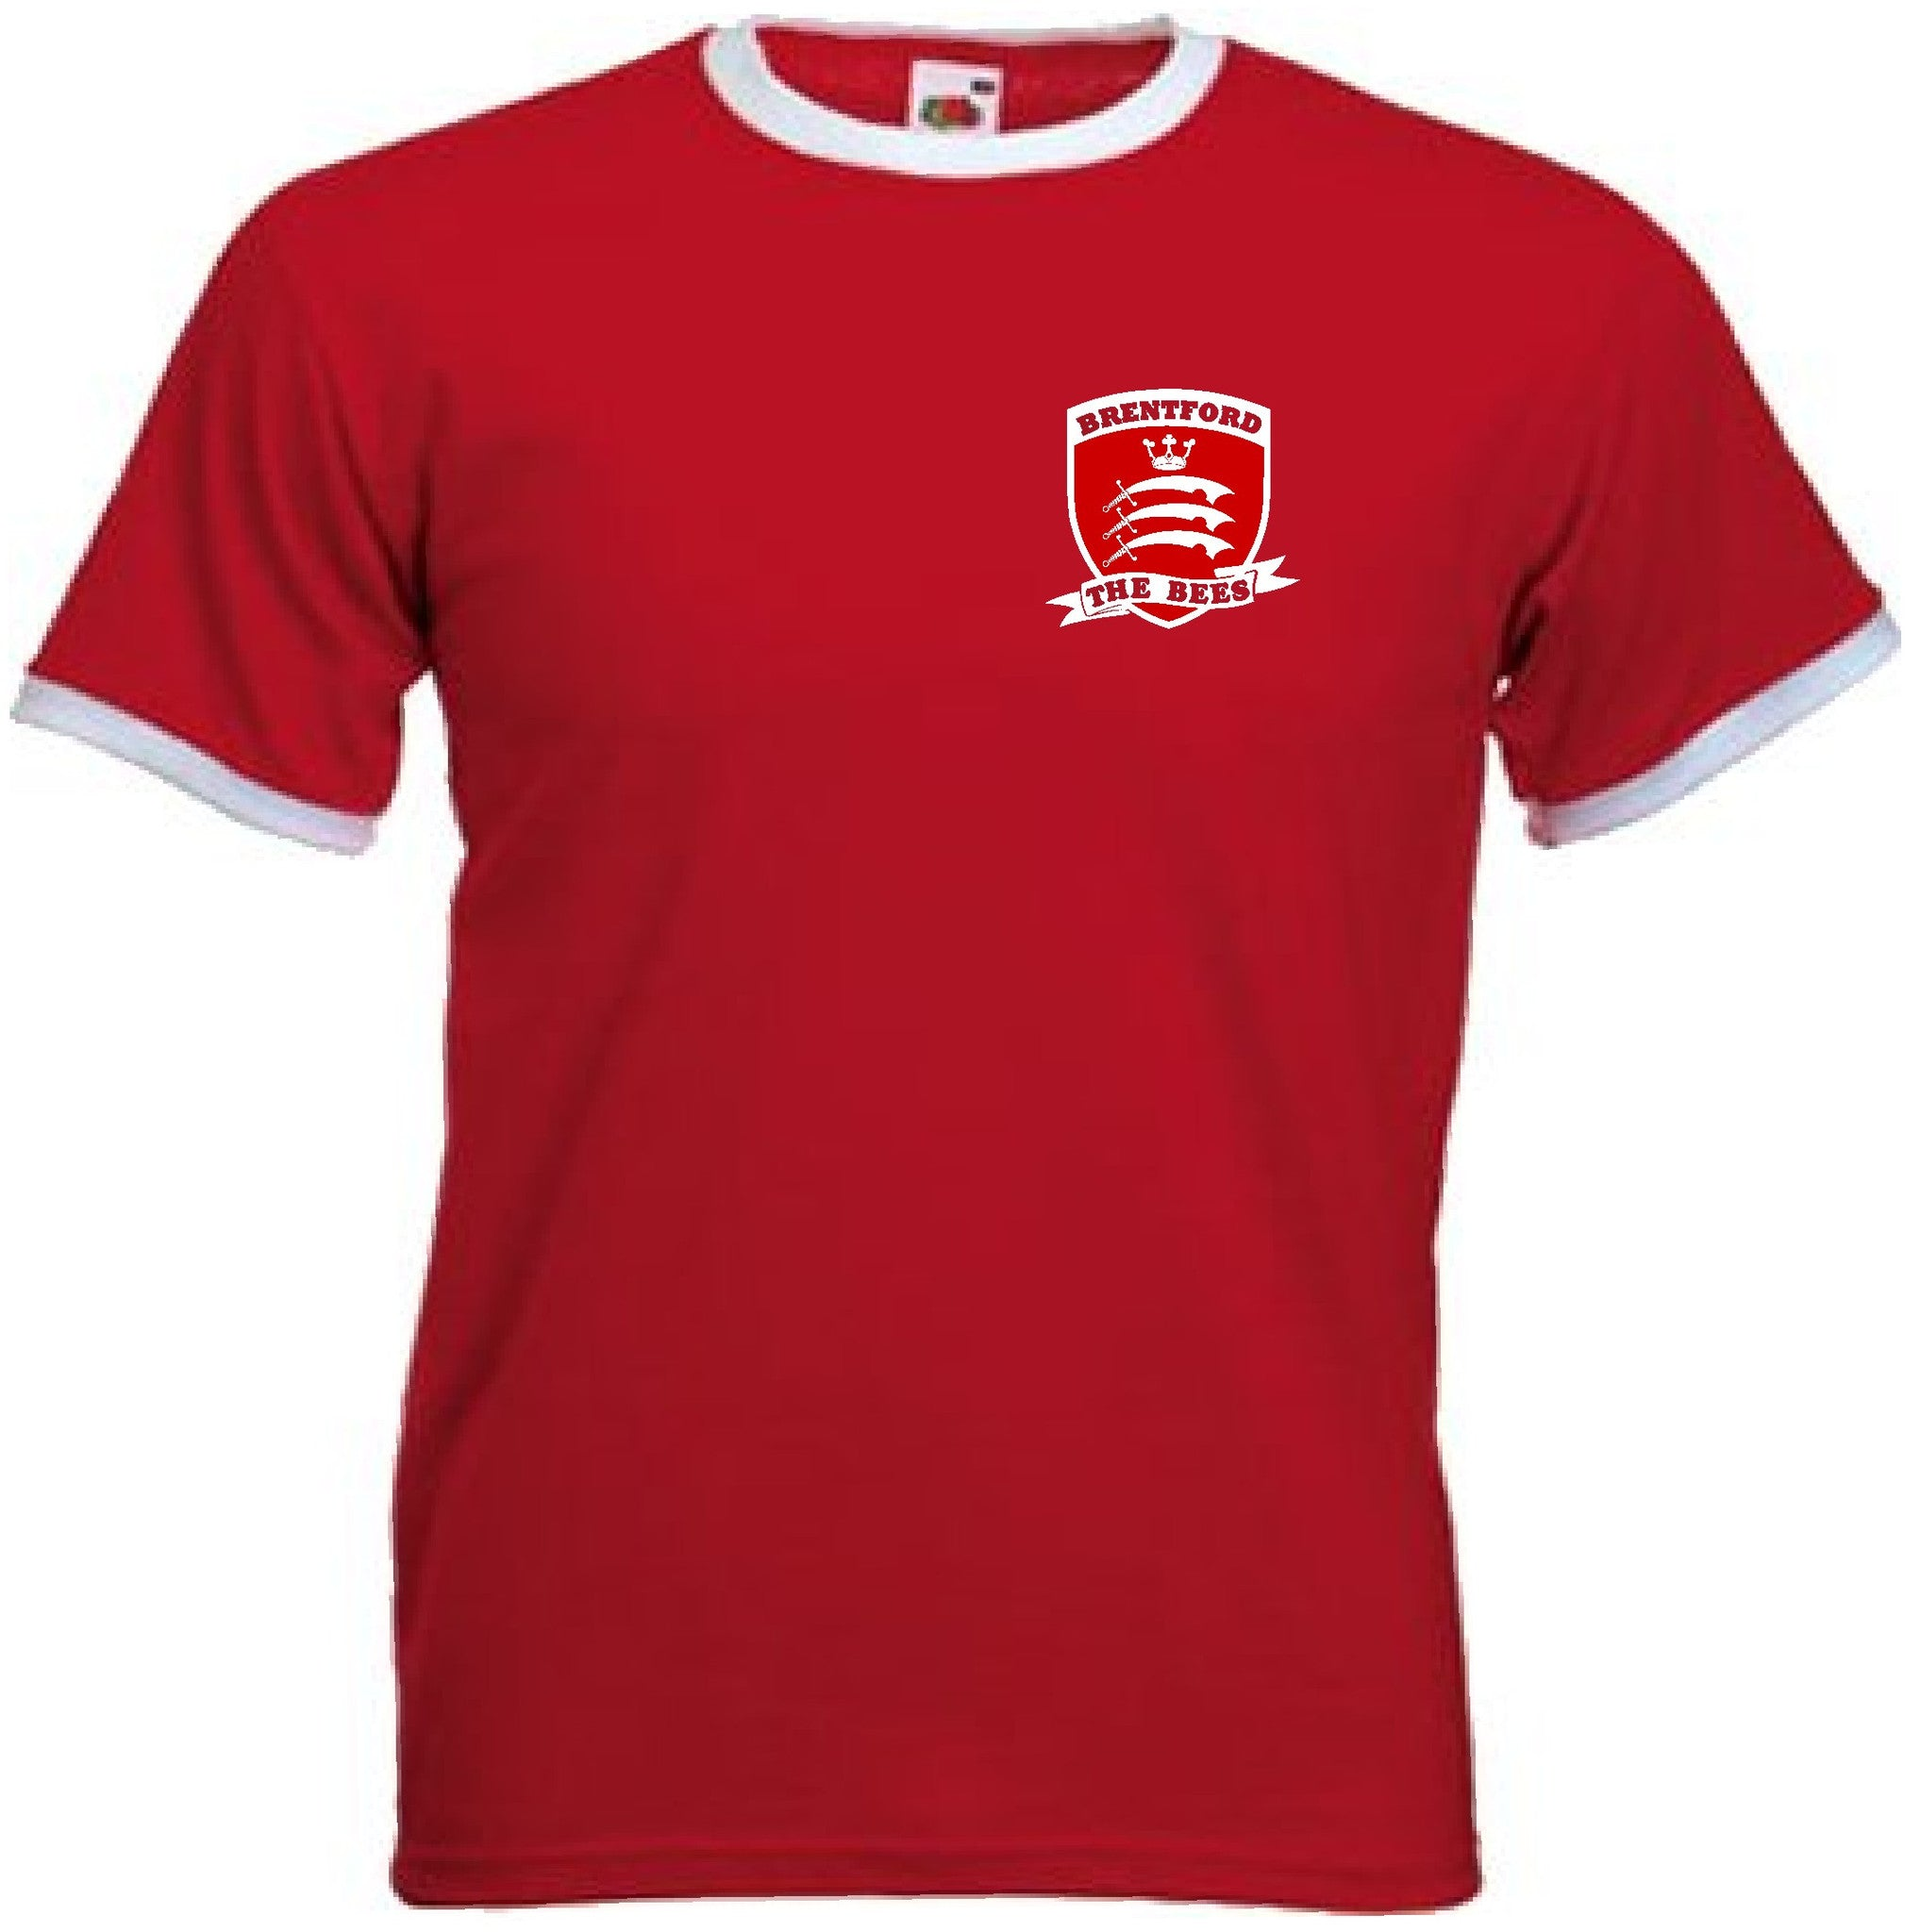 6e2c0ee9144 Brentford FC Football Club Middlesex Retro Soccer T-Shirt